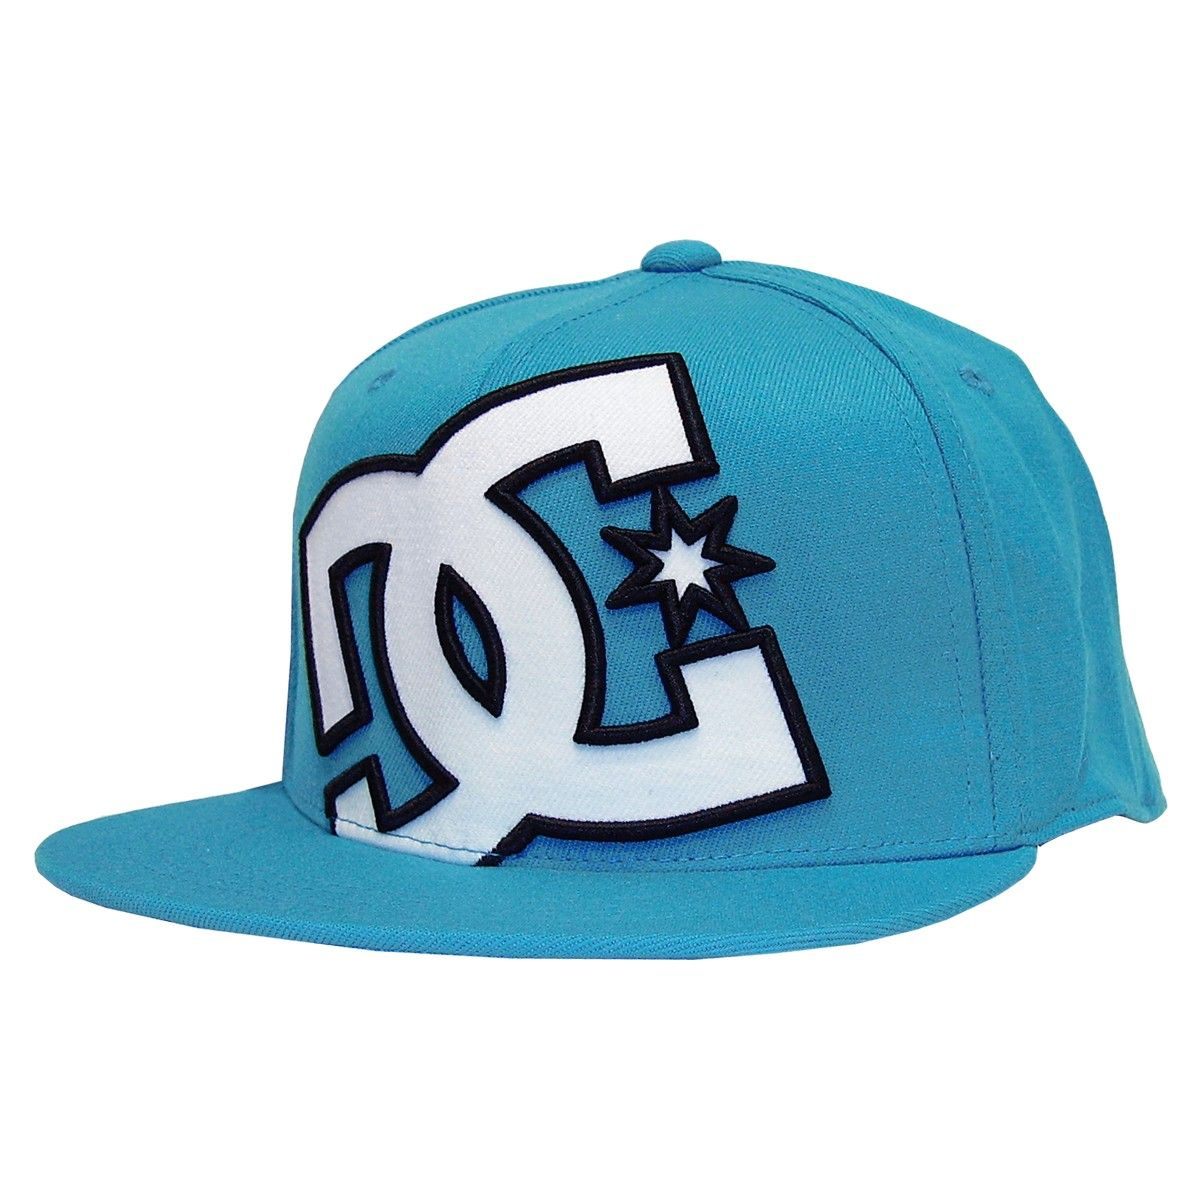 DC Shoes Ya Heard 2 boys bright blue casquette 210 flexfit cap 30€  dc   dcshoes  casquette  casquettes  cap  caps  hat  hats  skate  skateboard   skateboards ... cab35ebece8